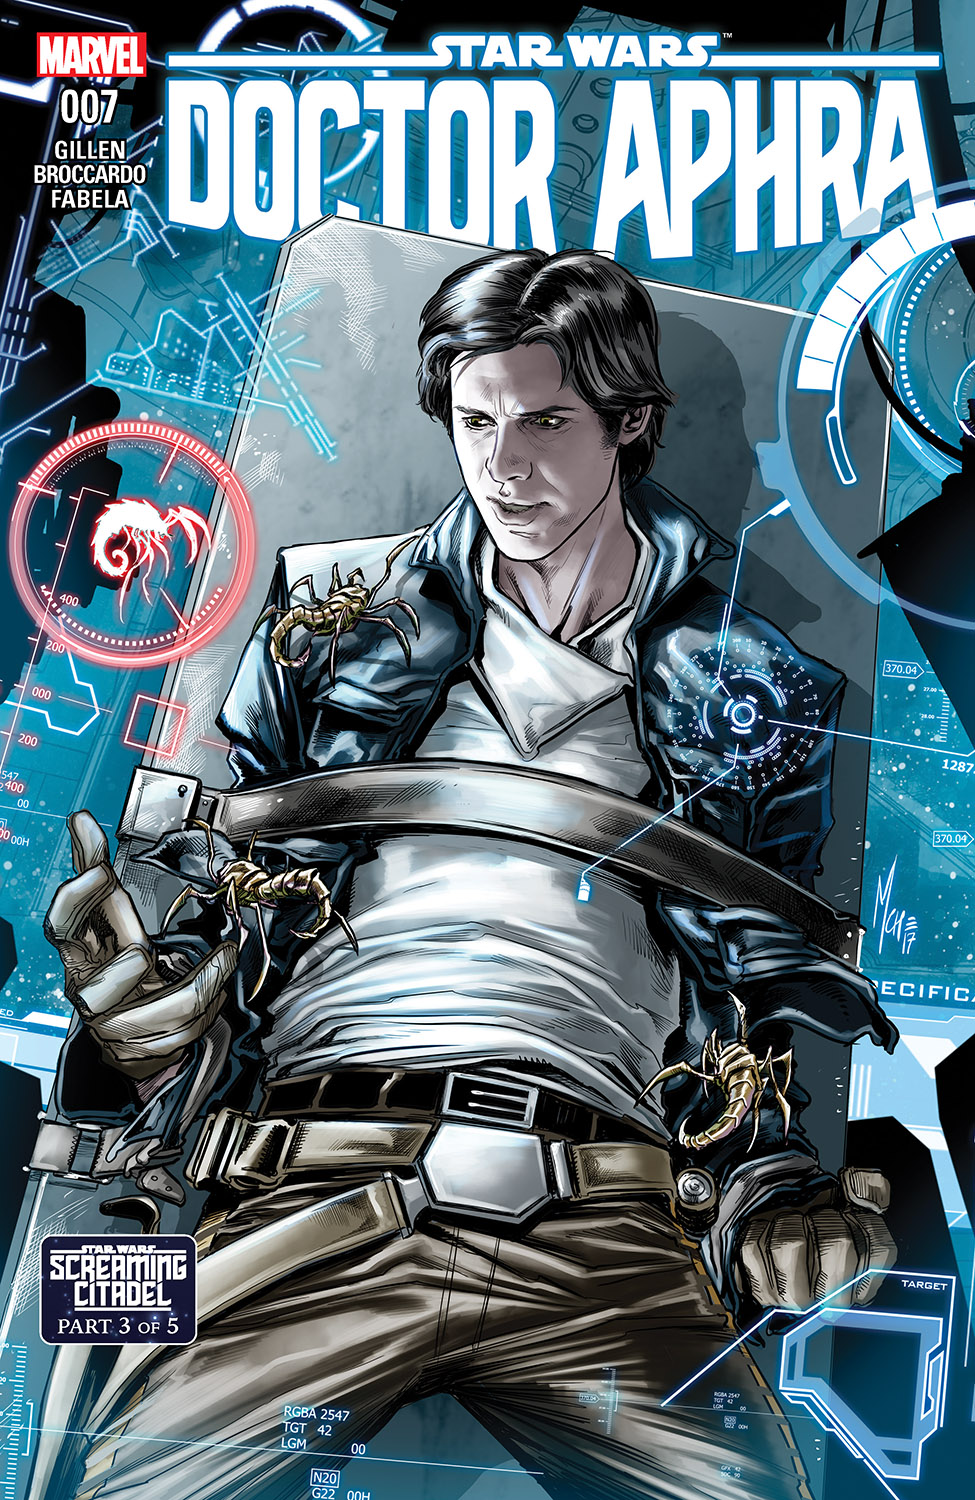 Star Wars: Doctor Aphra (2016) #7